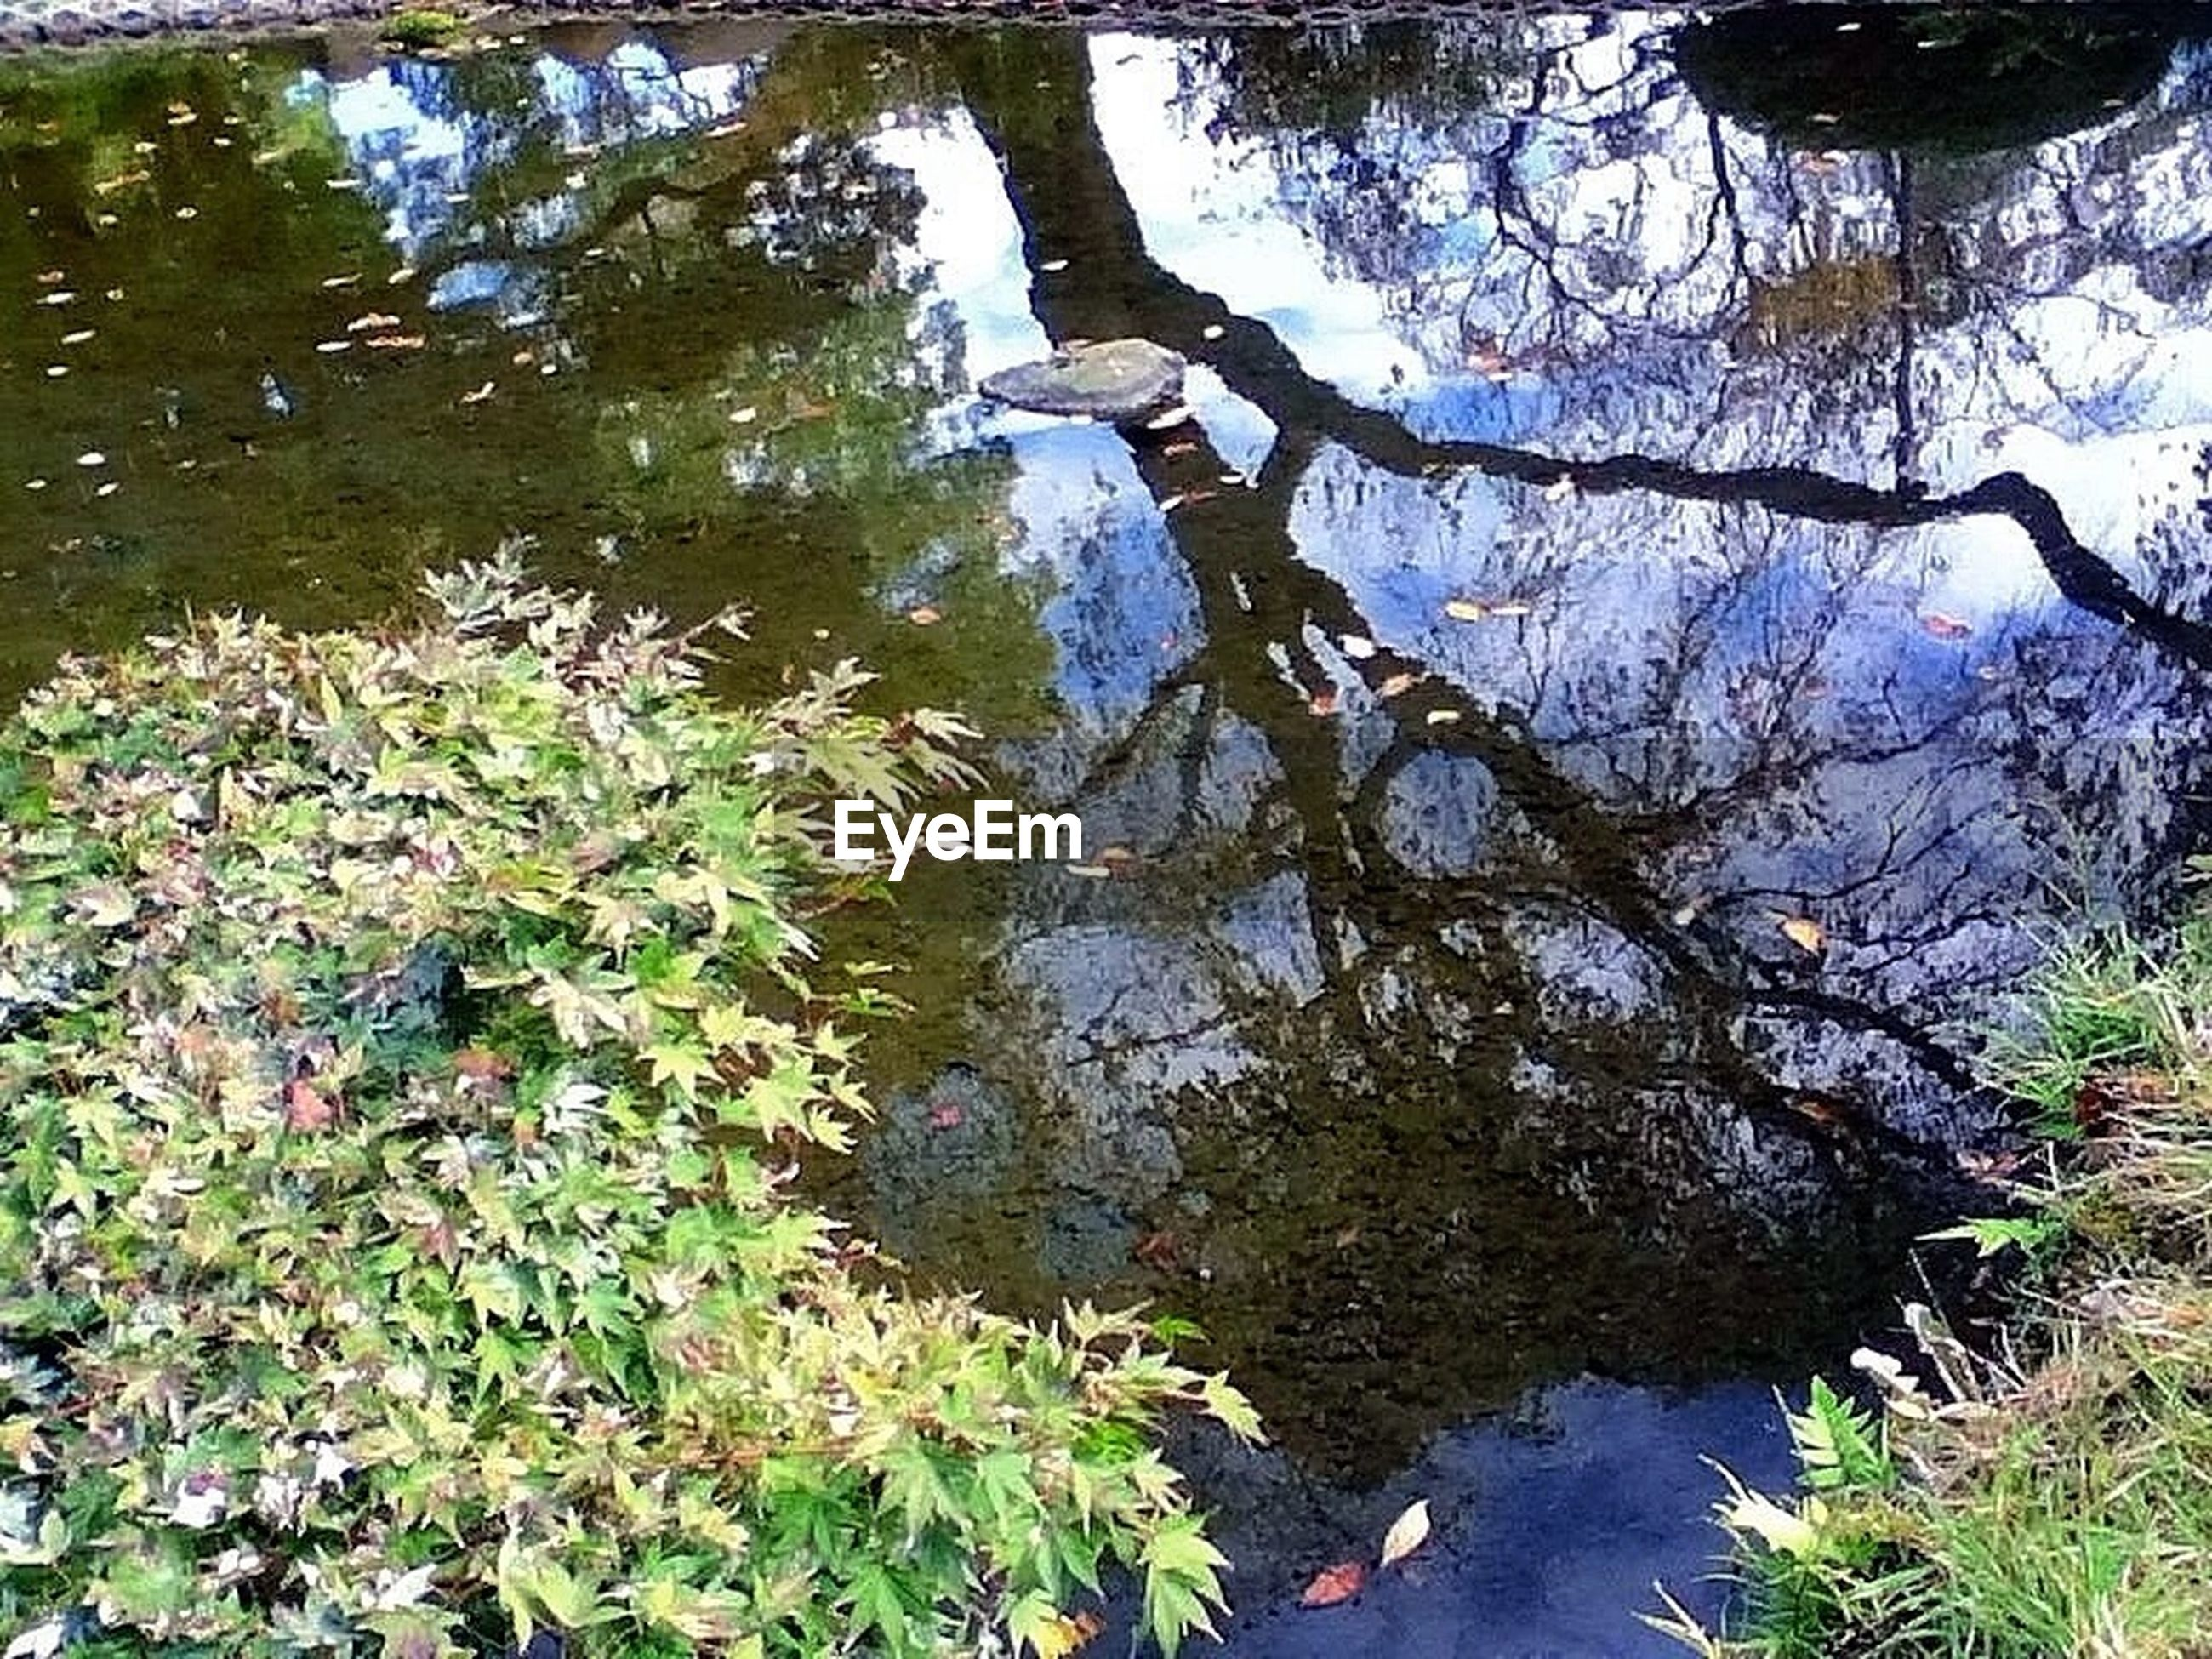 water, reflection, lake, tree, tranquility, nature, high angle view, tranquil scene, growth, branch, beauty in nature, pond, green color, plant, tree trunk, river, lakeshore, scenics, day, stream